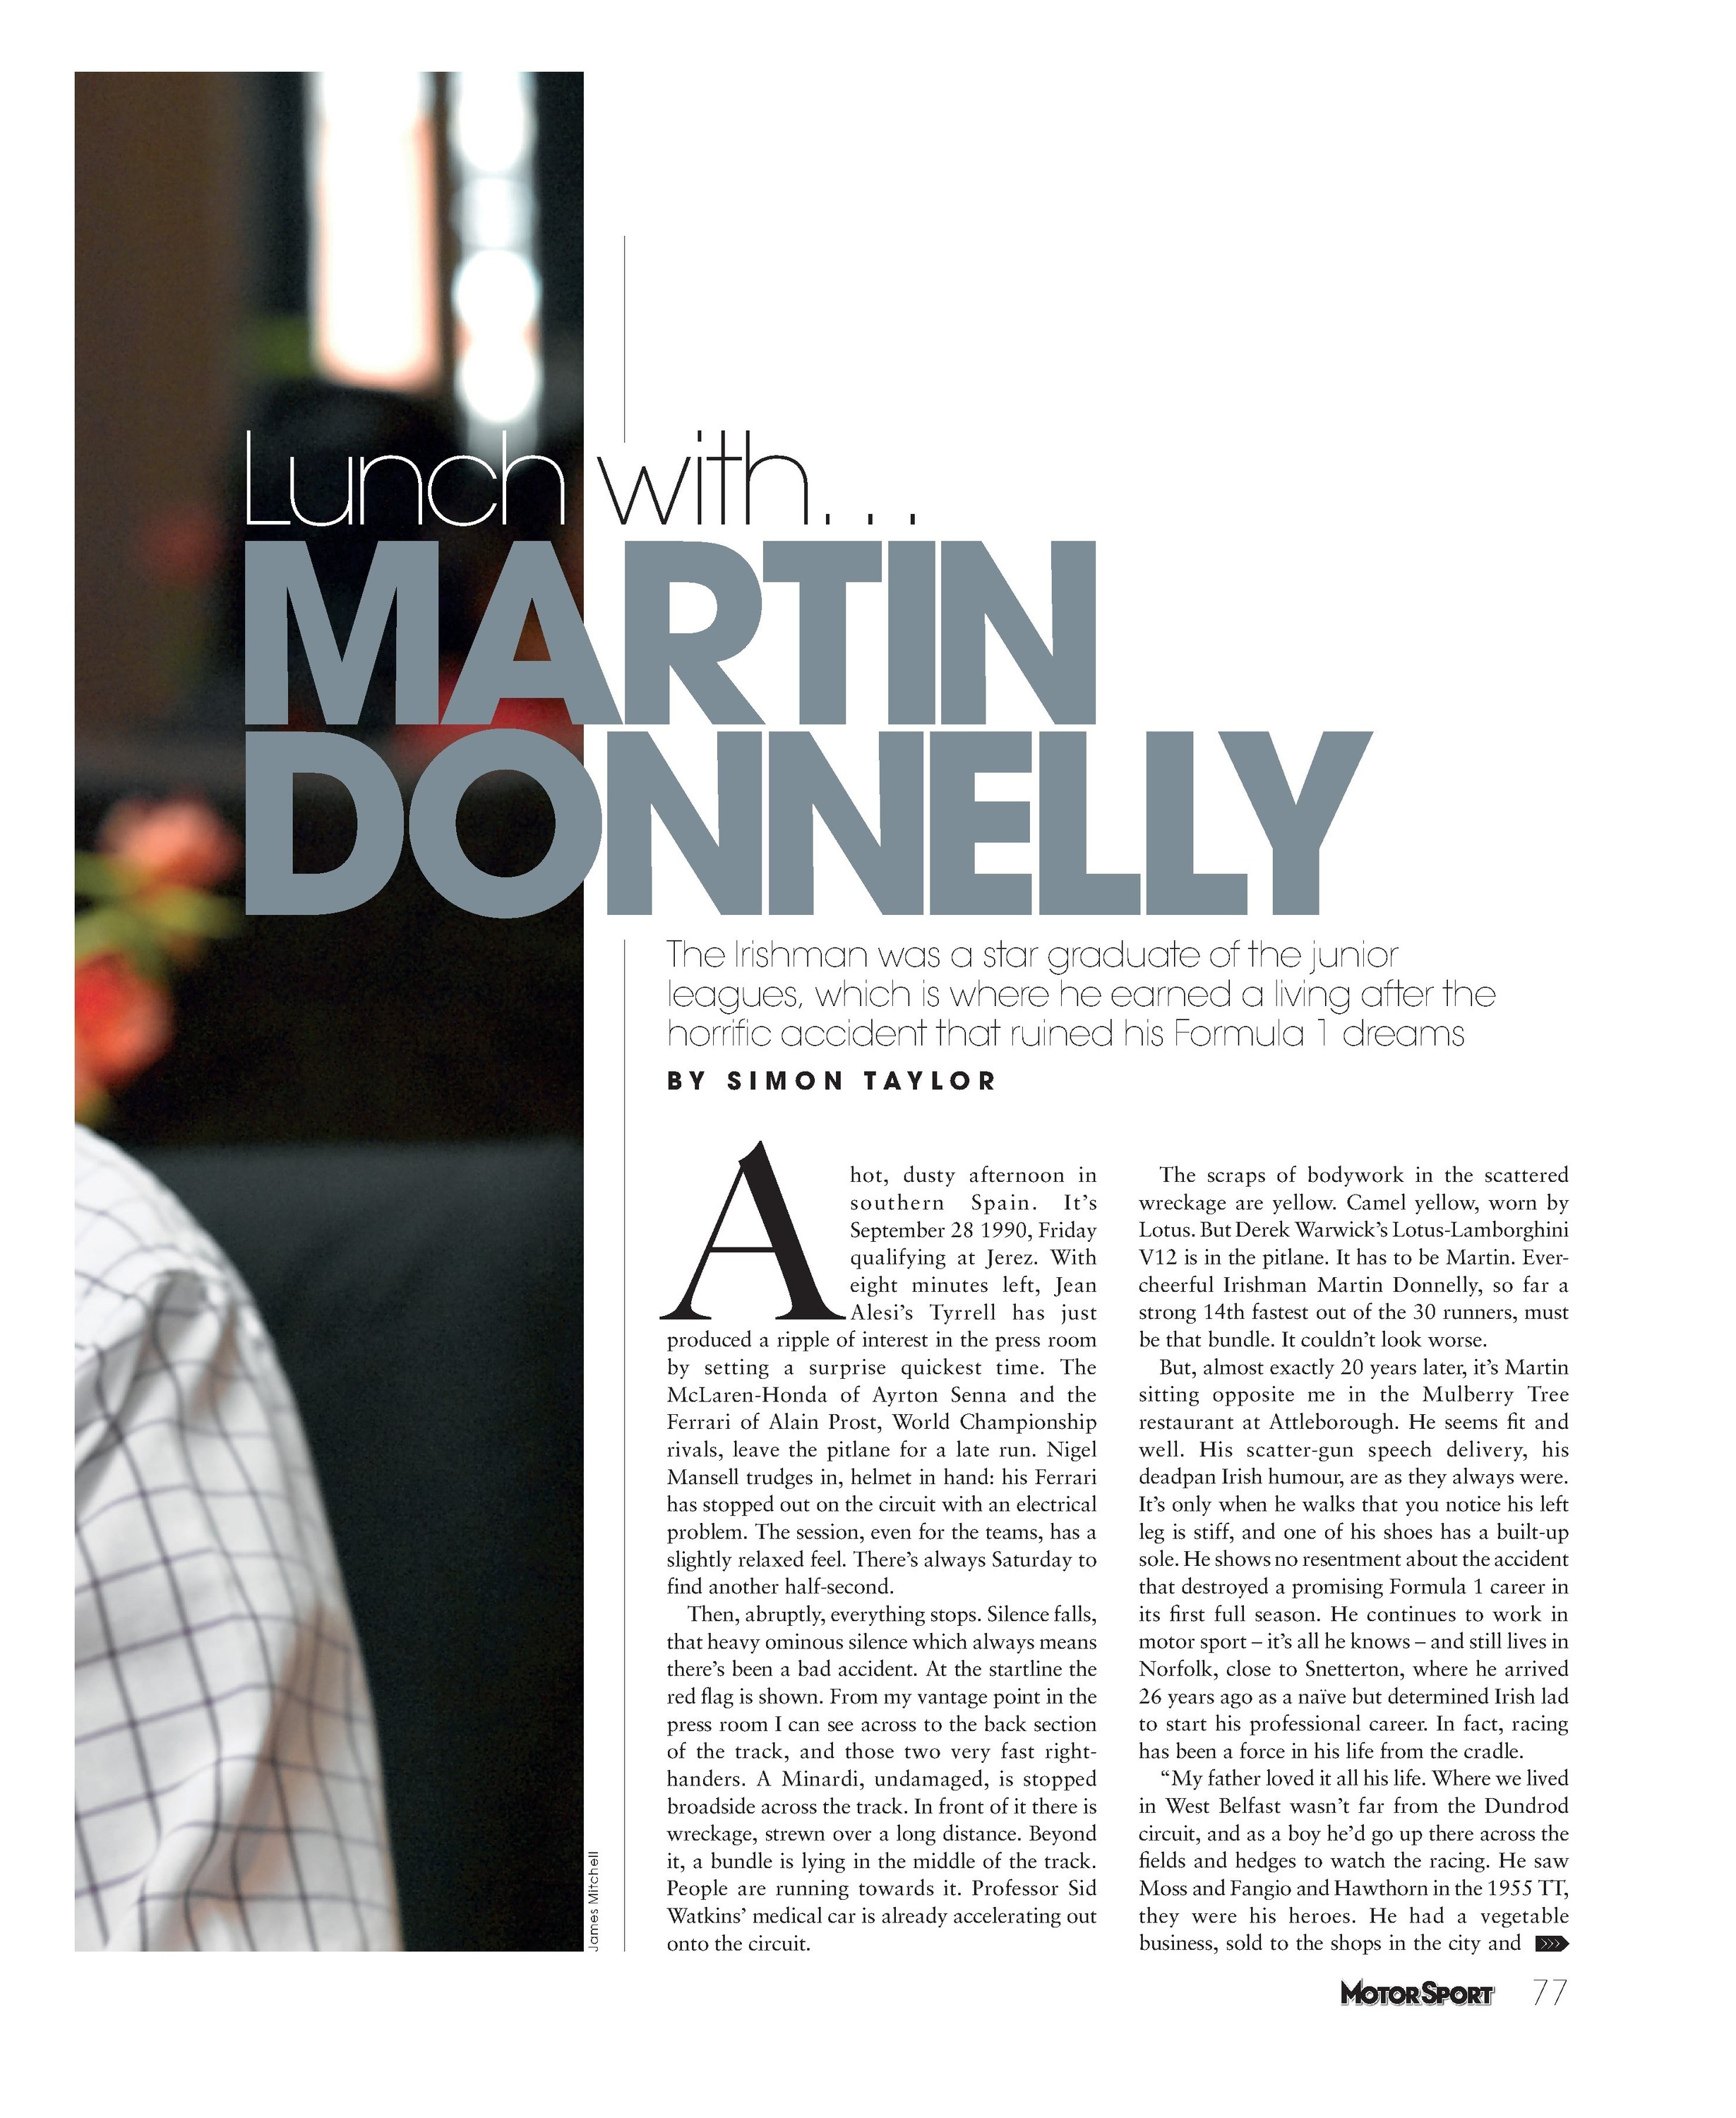 lunch with martin donnelly image